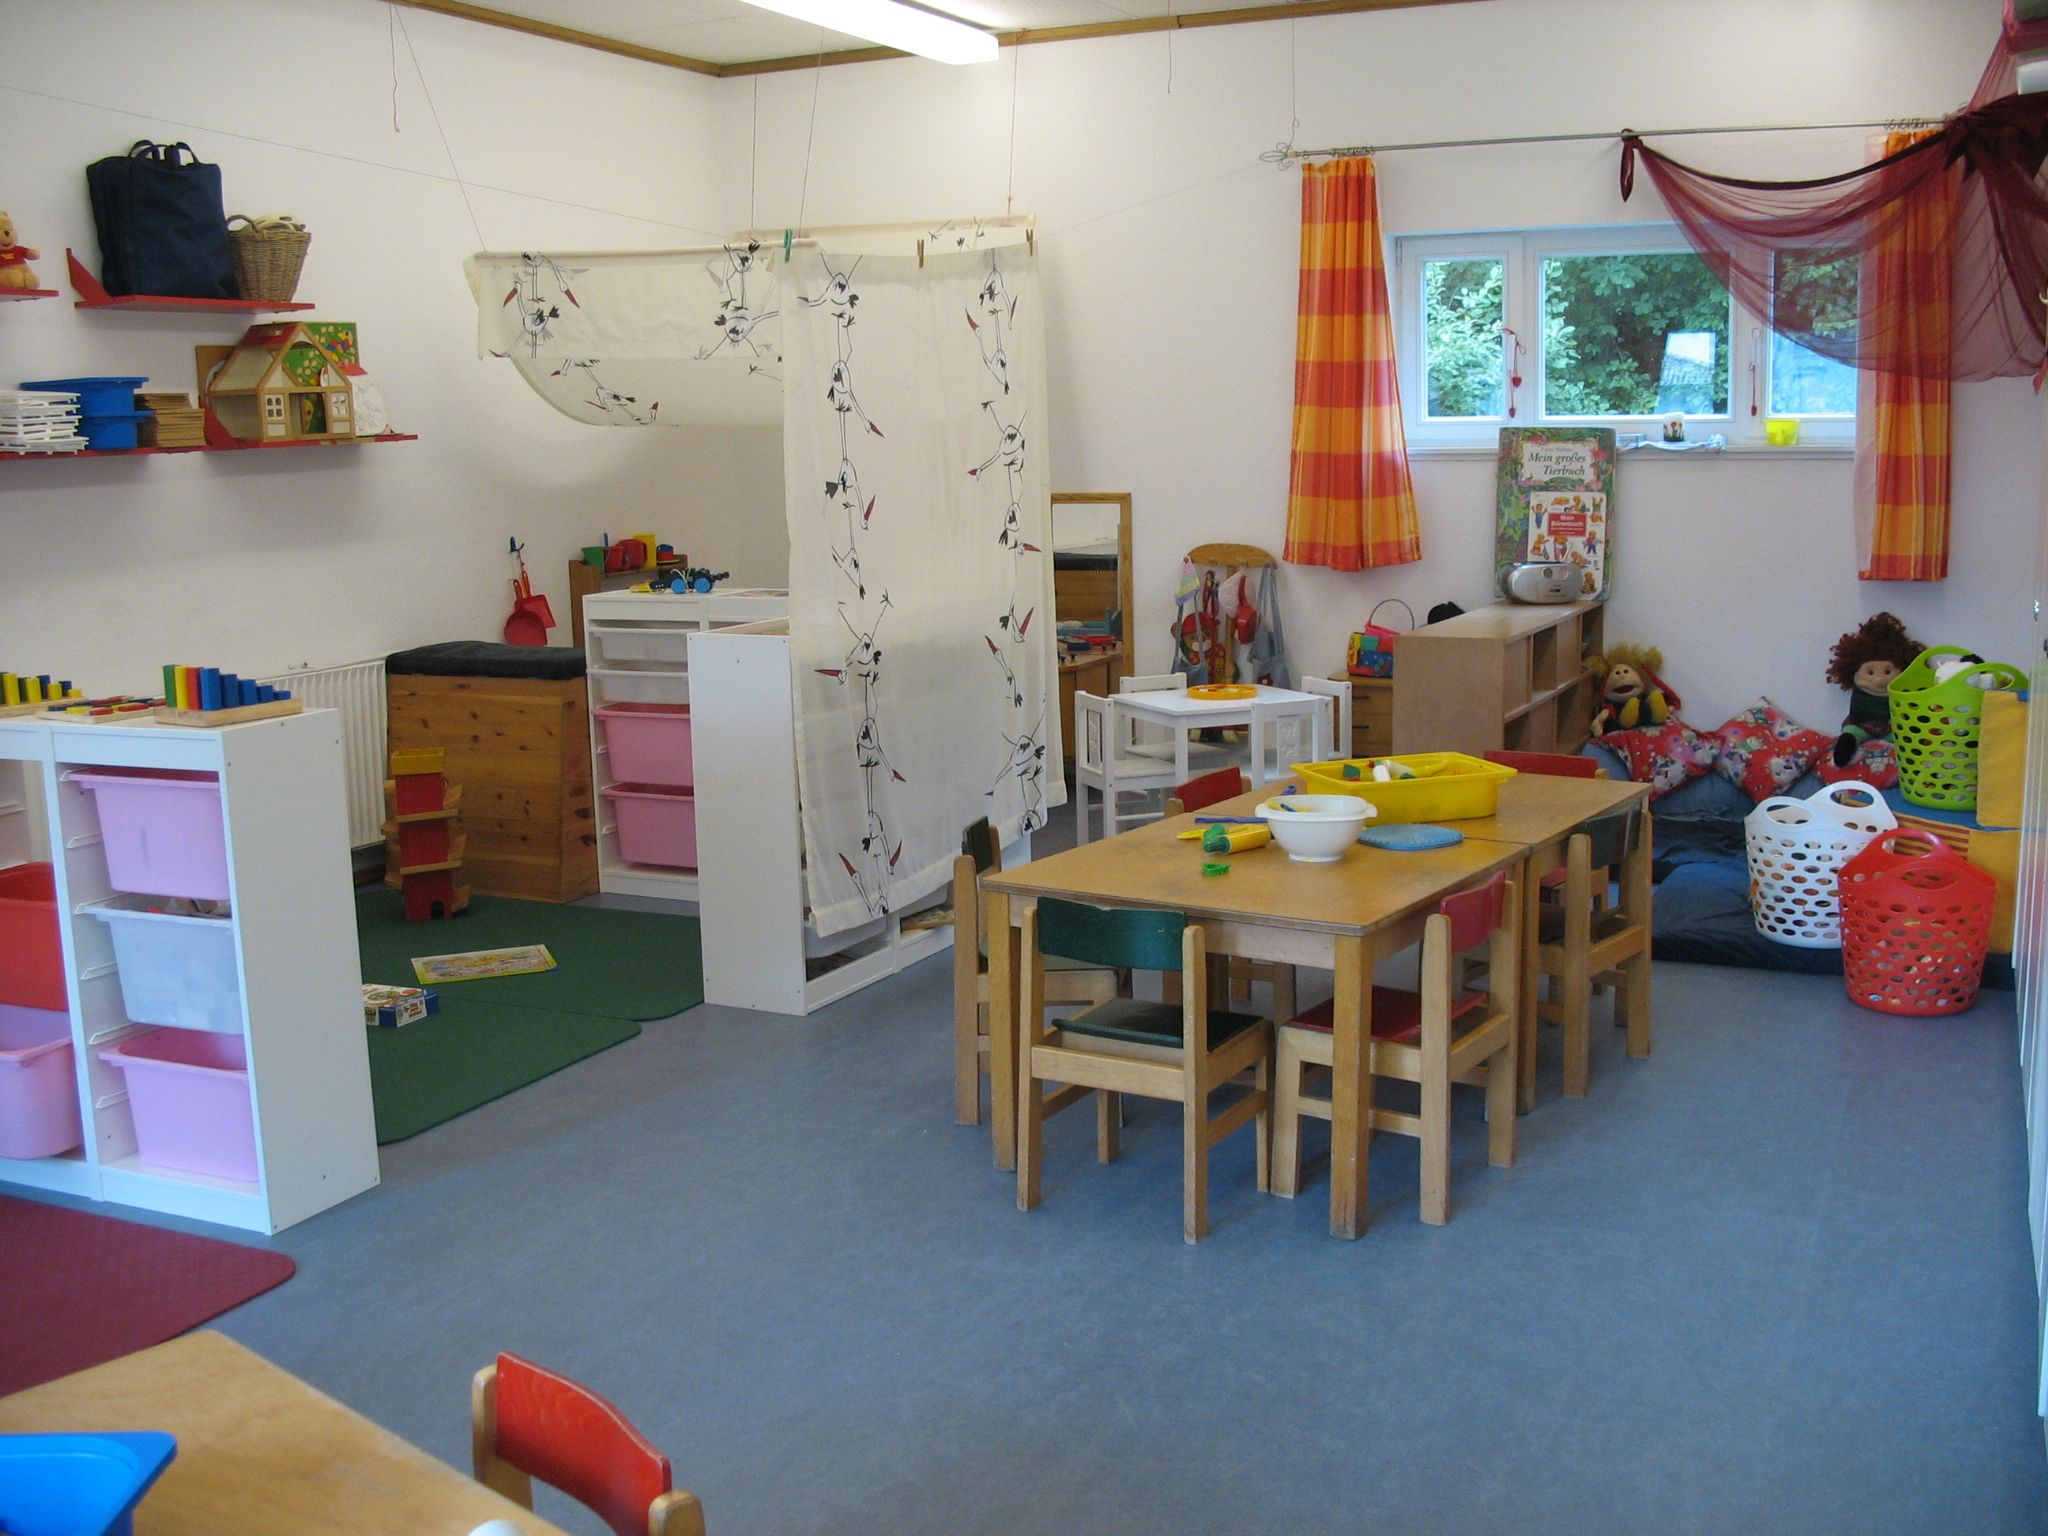 kindergarten gestalten kollektion ideen garten design. Black Bedroom Furniture Sets. Home Design Ideas